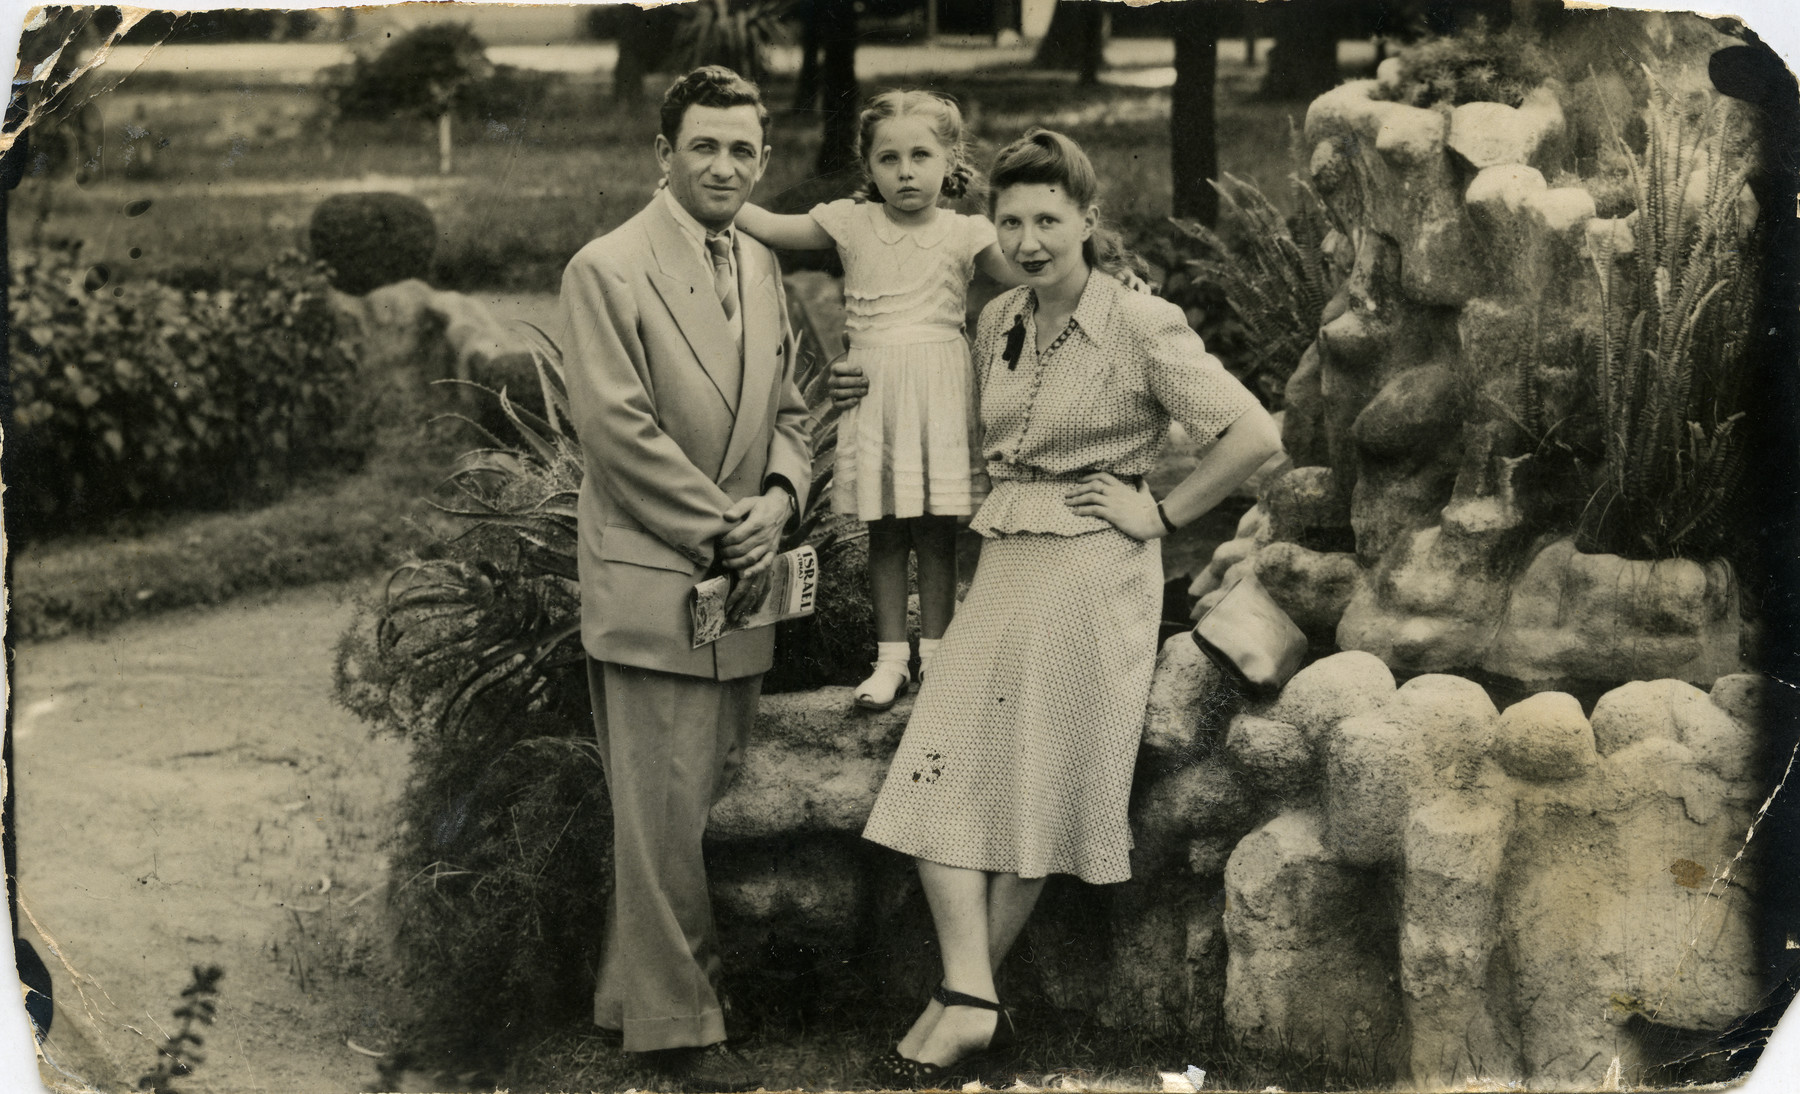 A Jewish family poses for a family portrait in Cordova.   Shulamit Kagan is pictured with her father, Lieb (Leon) Kagan and with her mother, Lisa Fishko Kagan,.